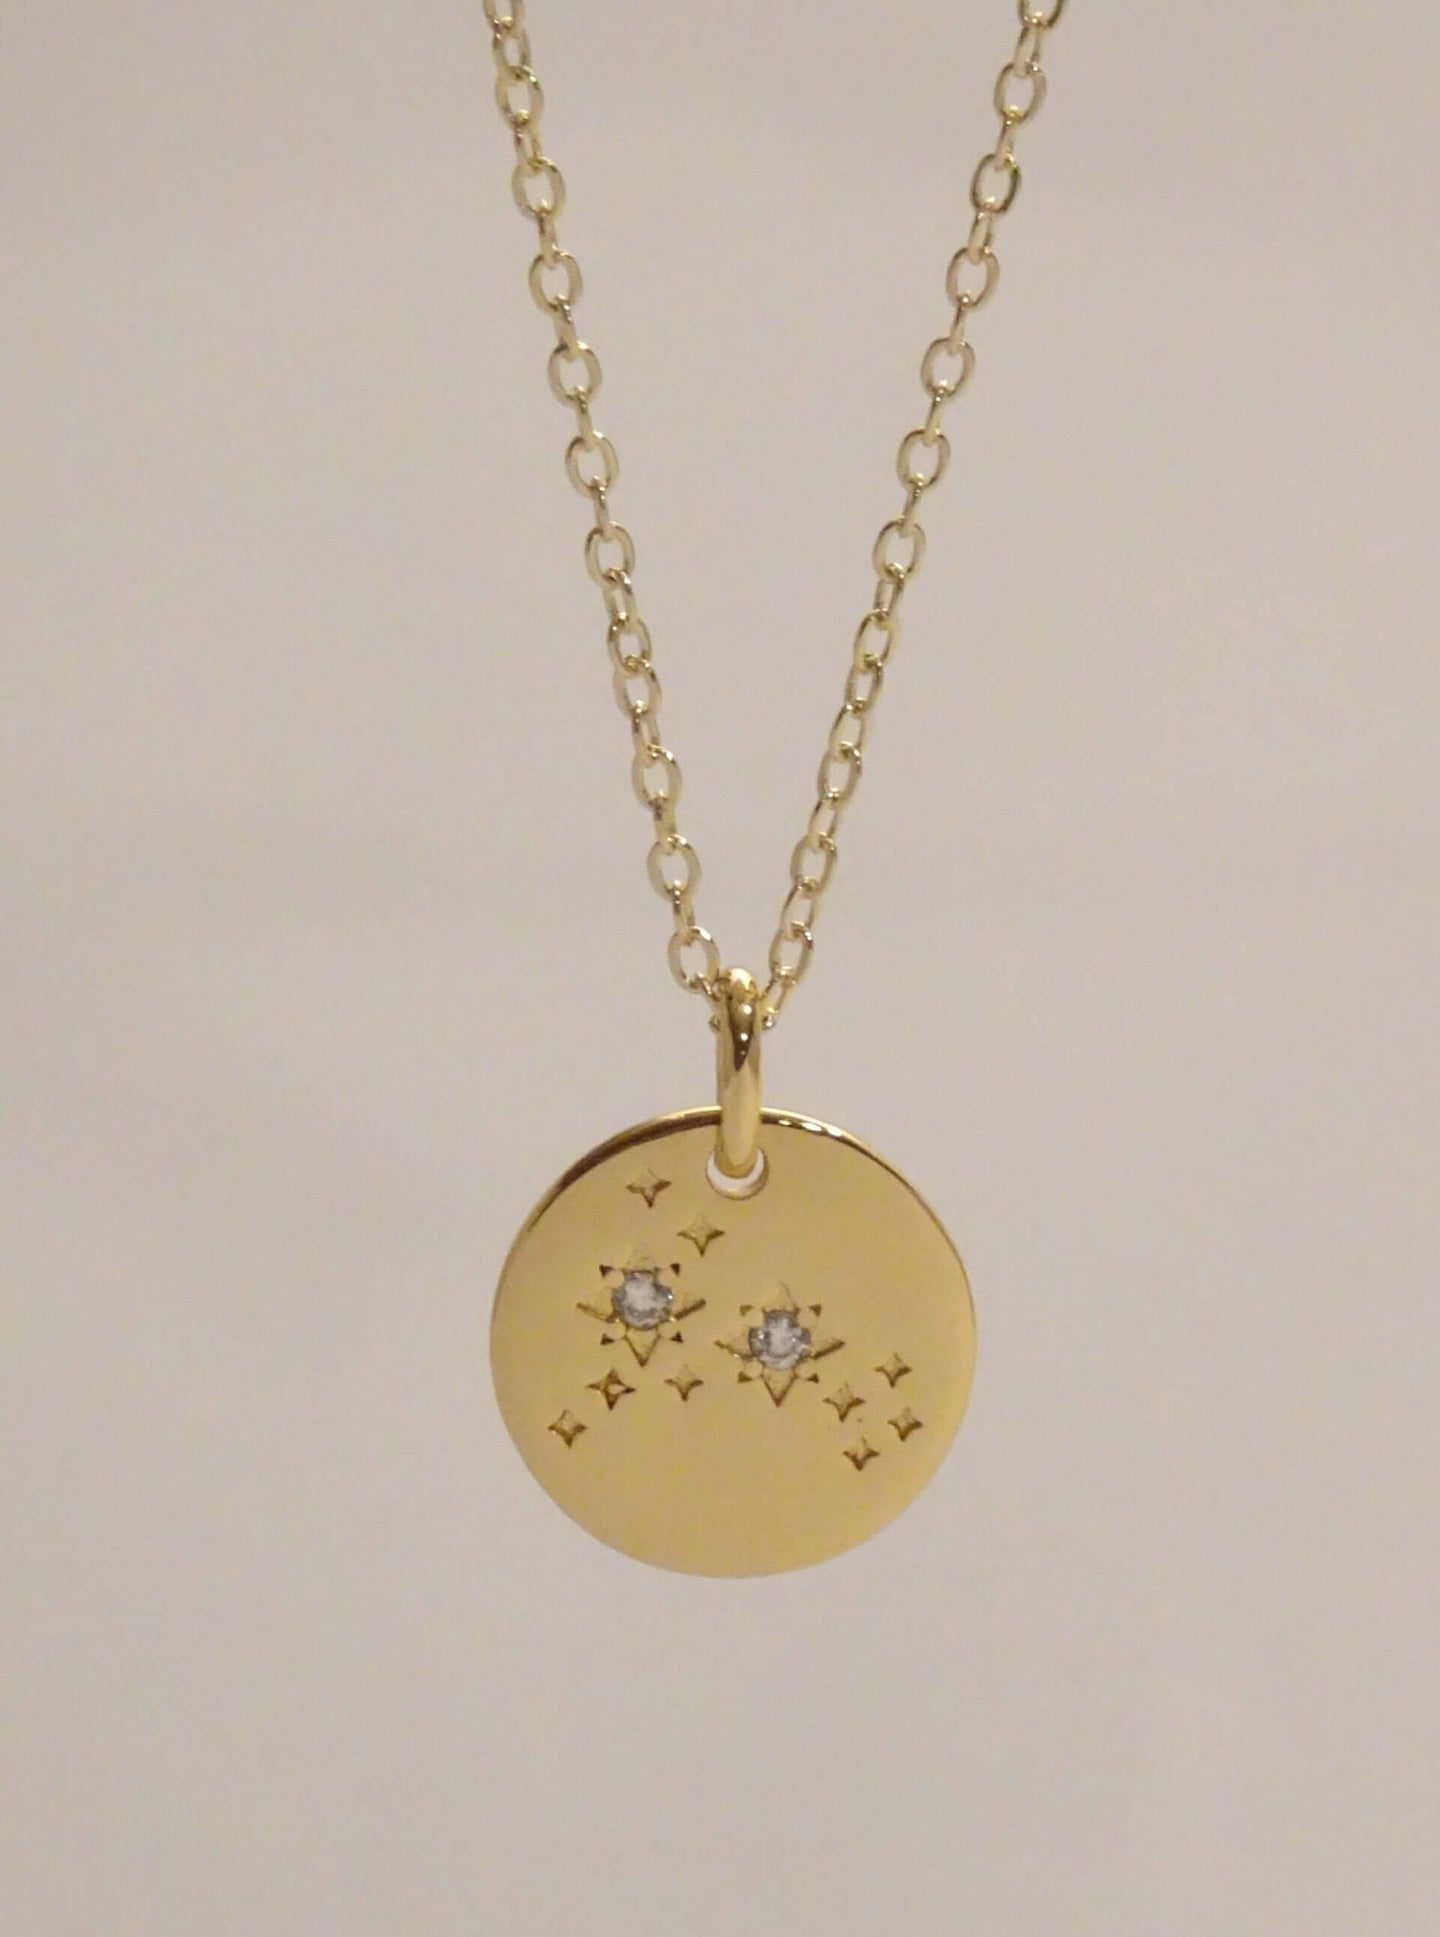 pisces jewelry, pisces zodiac sign jewelry, pisces necklace, pisces necklace gold, pisces necklace silver, pisces zodiac necklace, Pisces fish necklace, zodiac jewelry libra, zodiac sign necklace, zodiac pendant necklace, zodiac constellation necklace